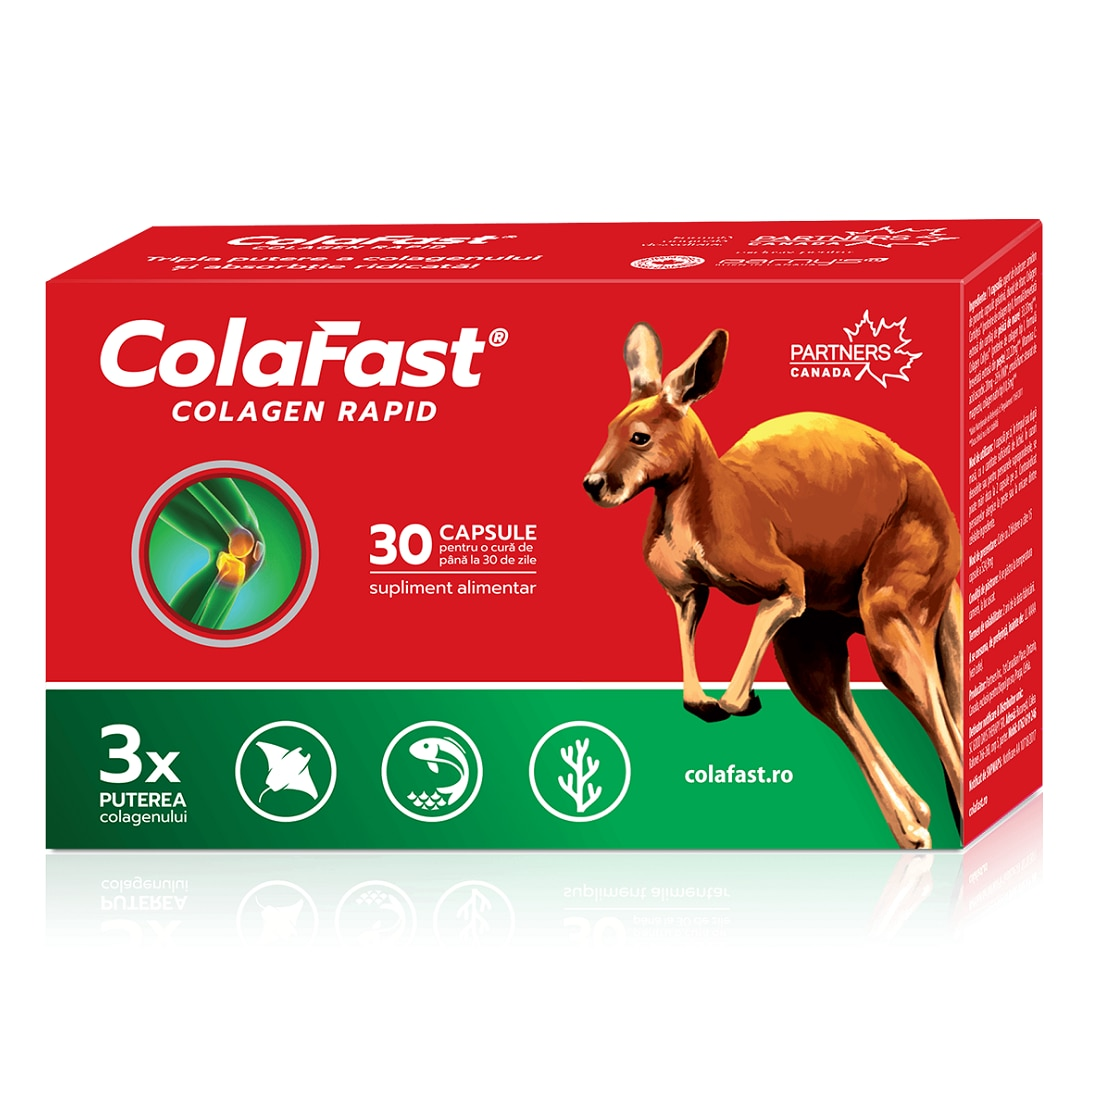 colafast emag